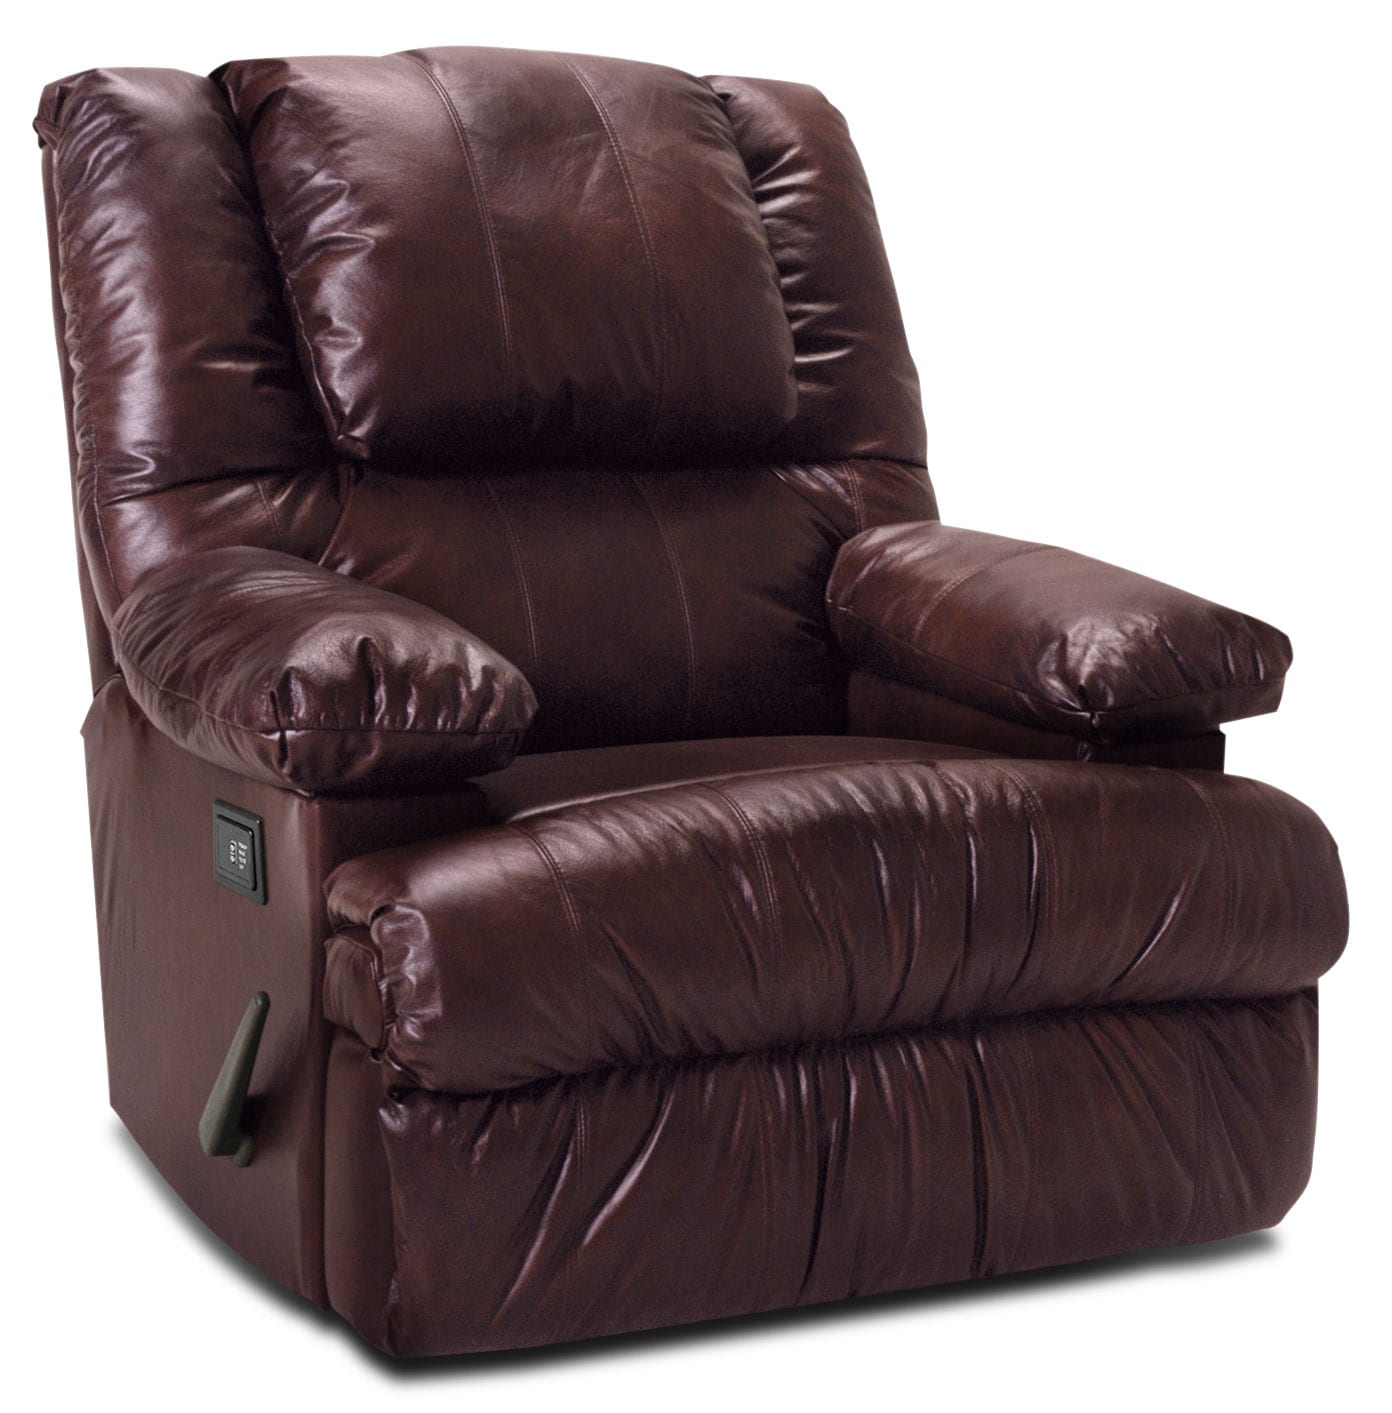 Designed2B Recliner 5598 Genuine Leather Massage Recliner with Storage Arms - Burgundy